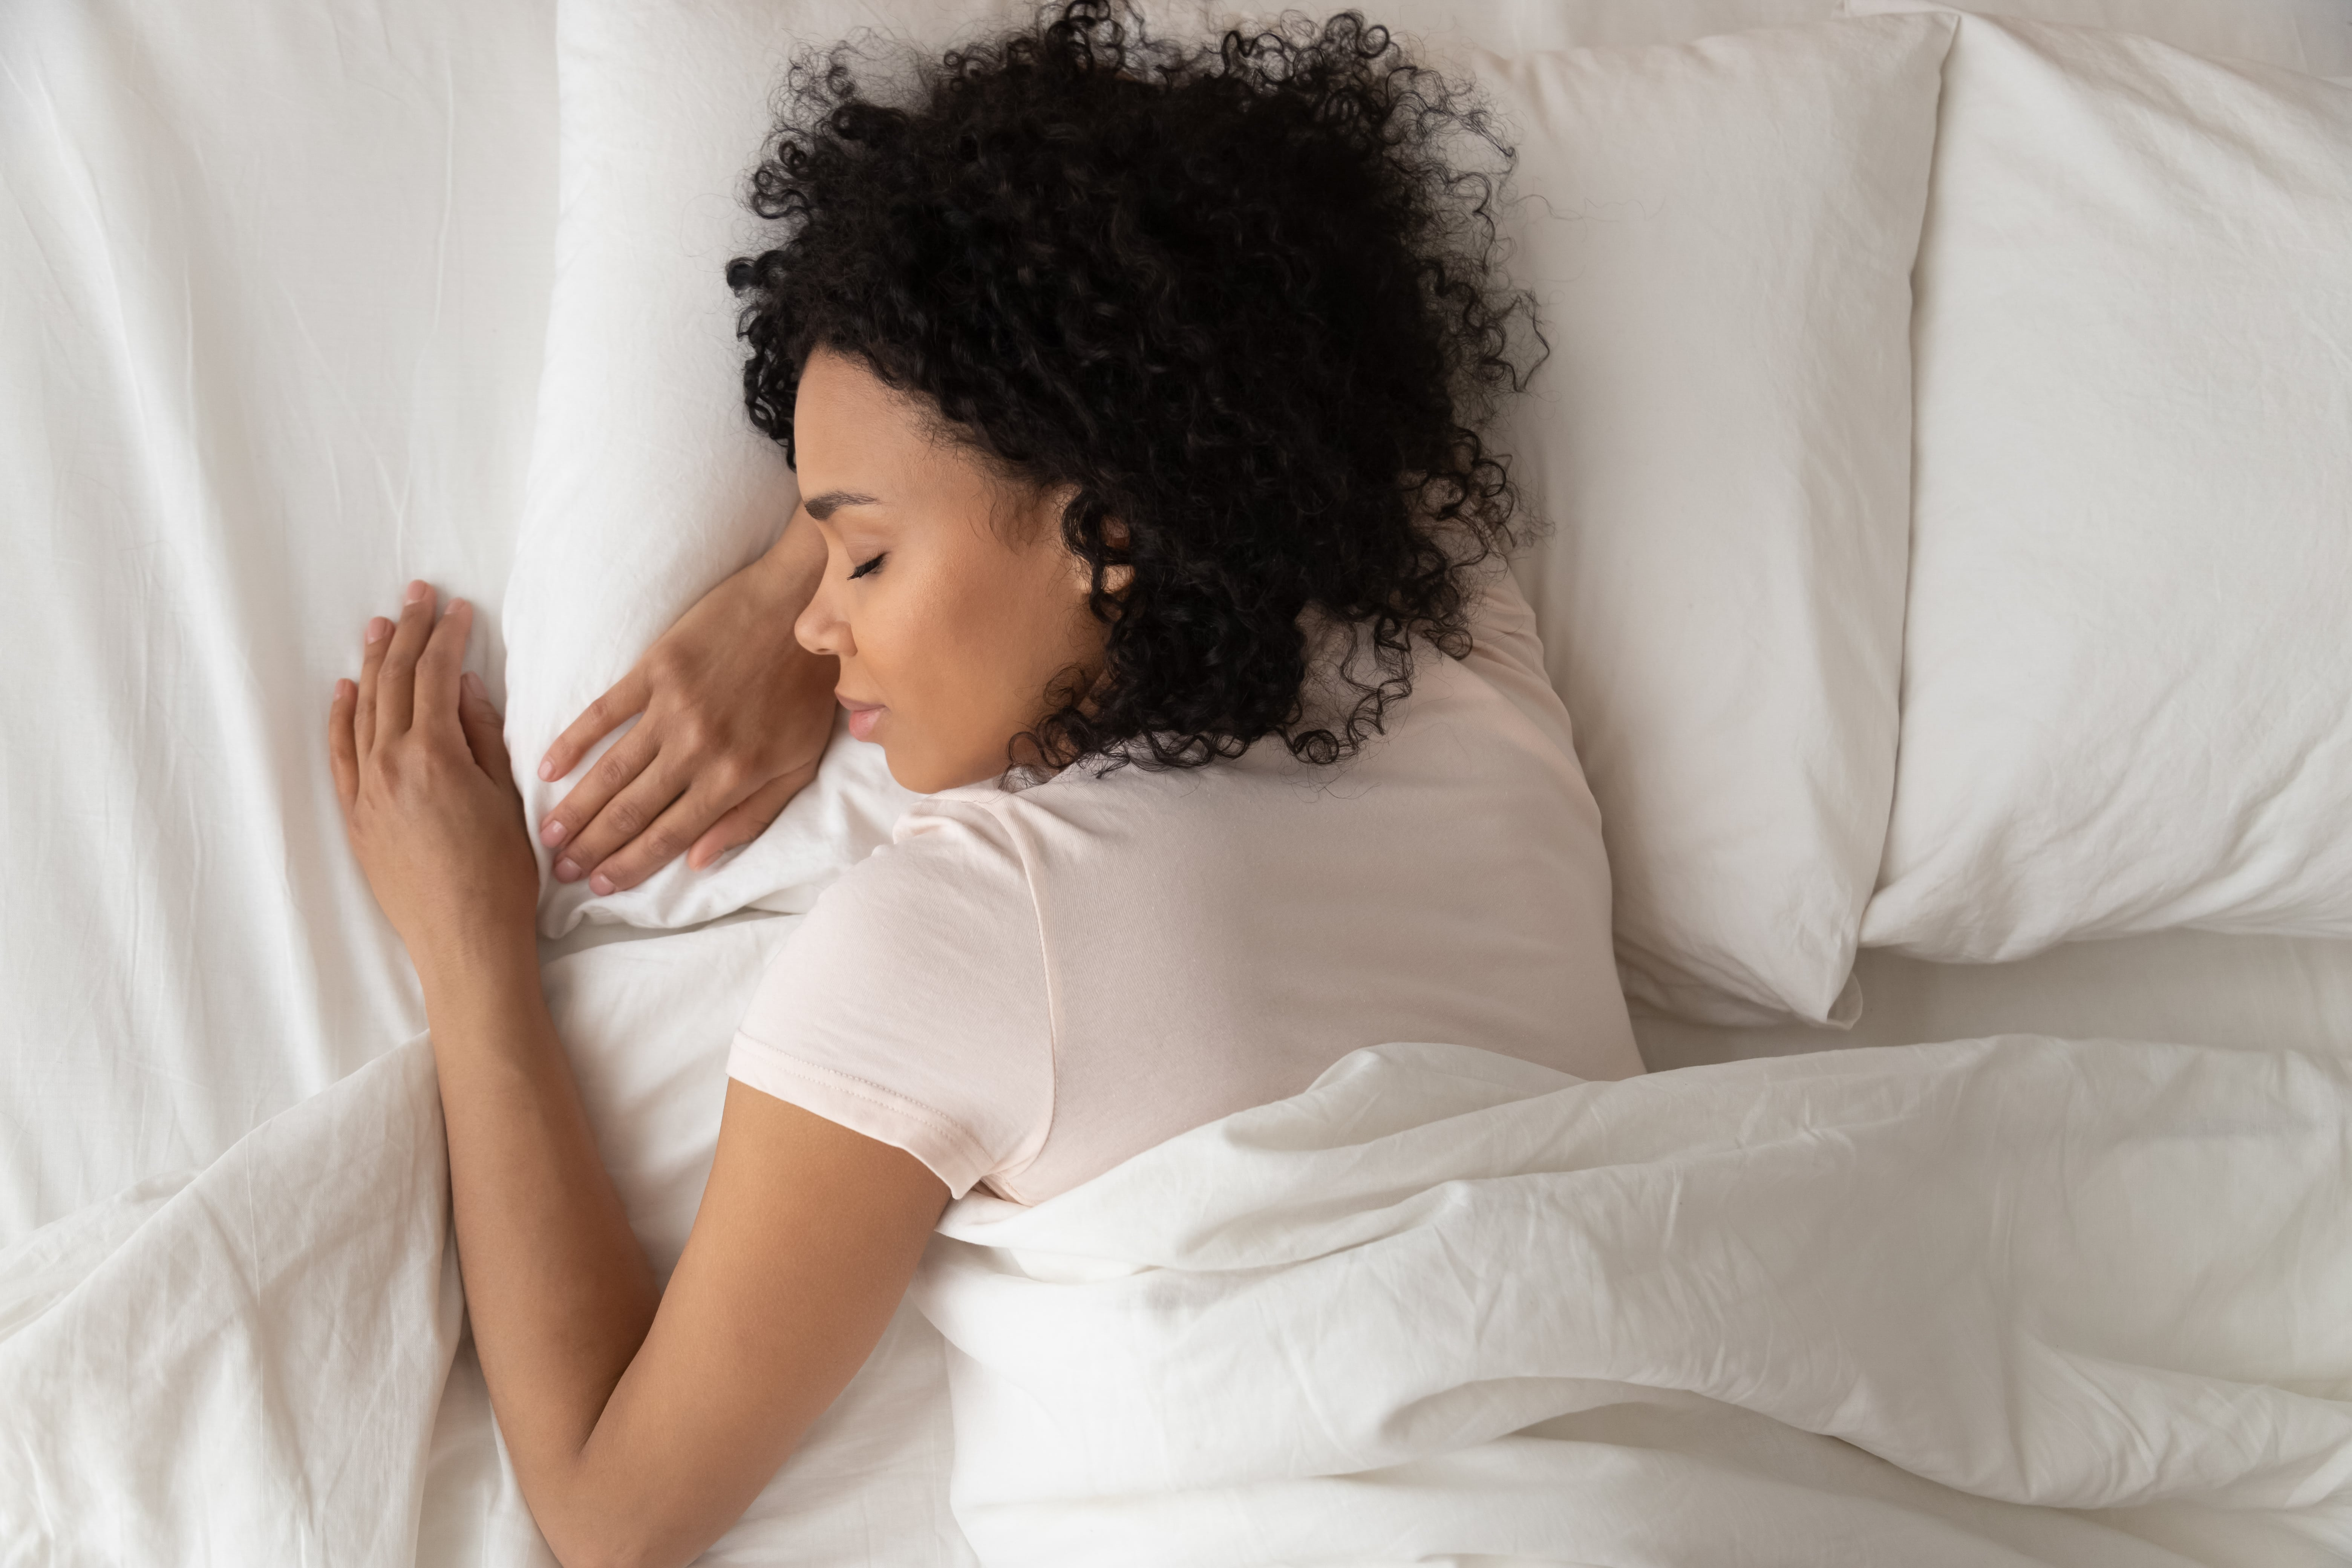 7 Health Benefits of Power Napping